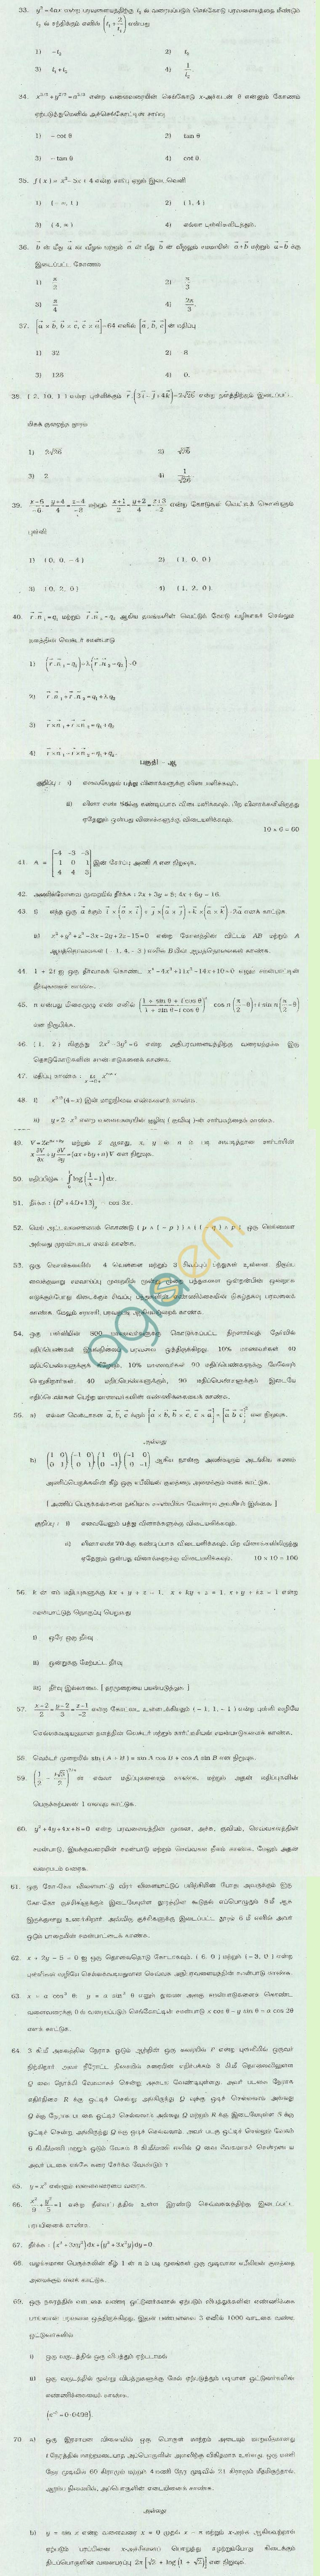 TN Board Higher Secondary (Plus 2) Mathematics Question Papers March 2011